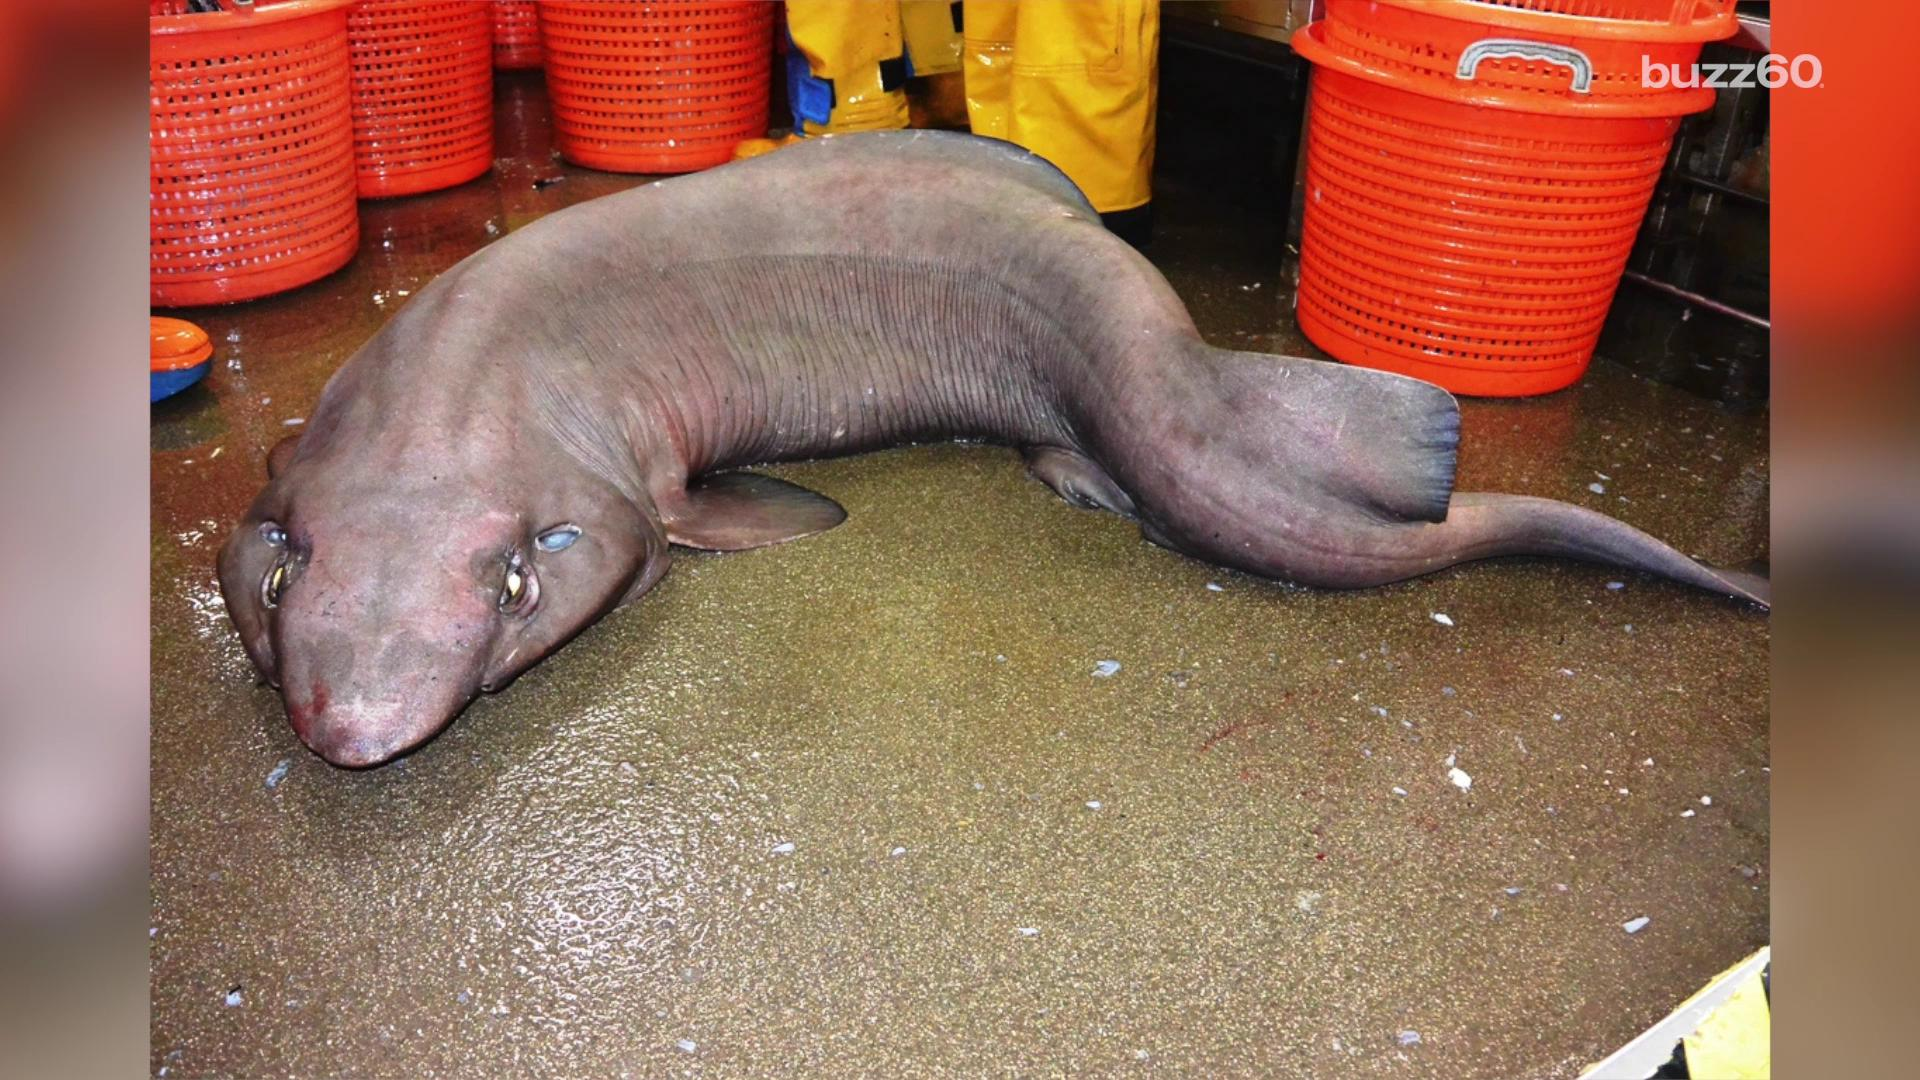 Extremely rare shark may be weirdest-looking animal ever